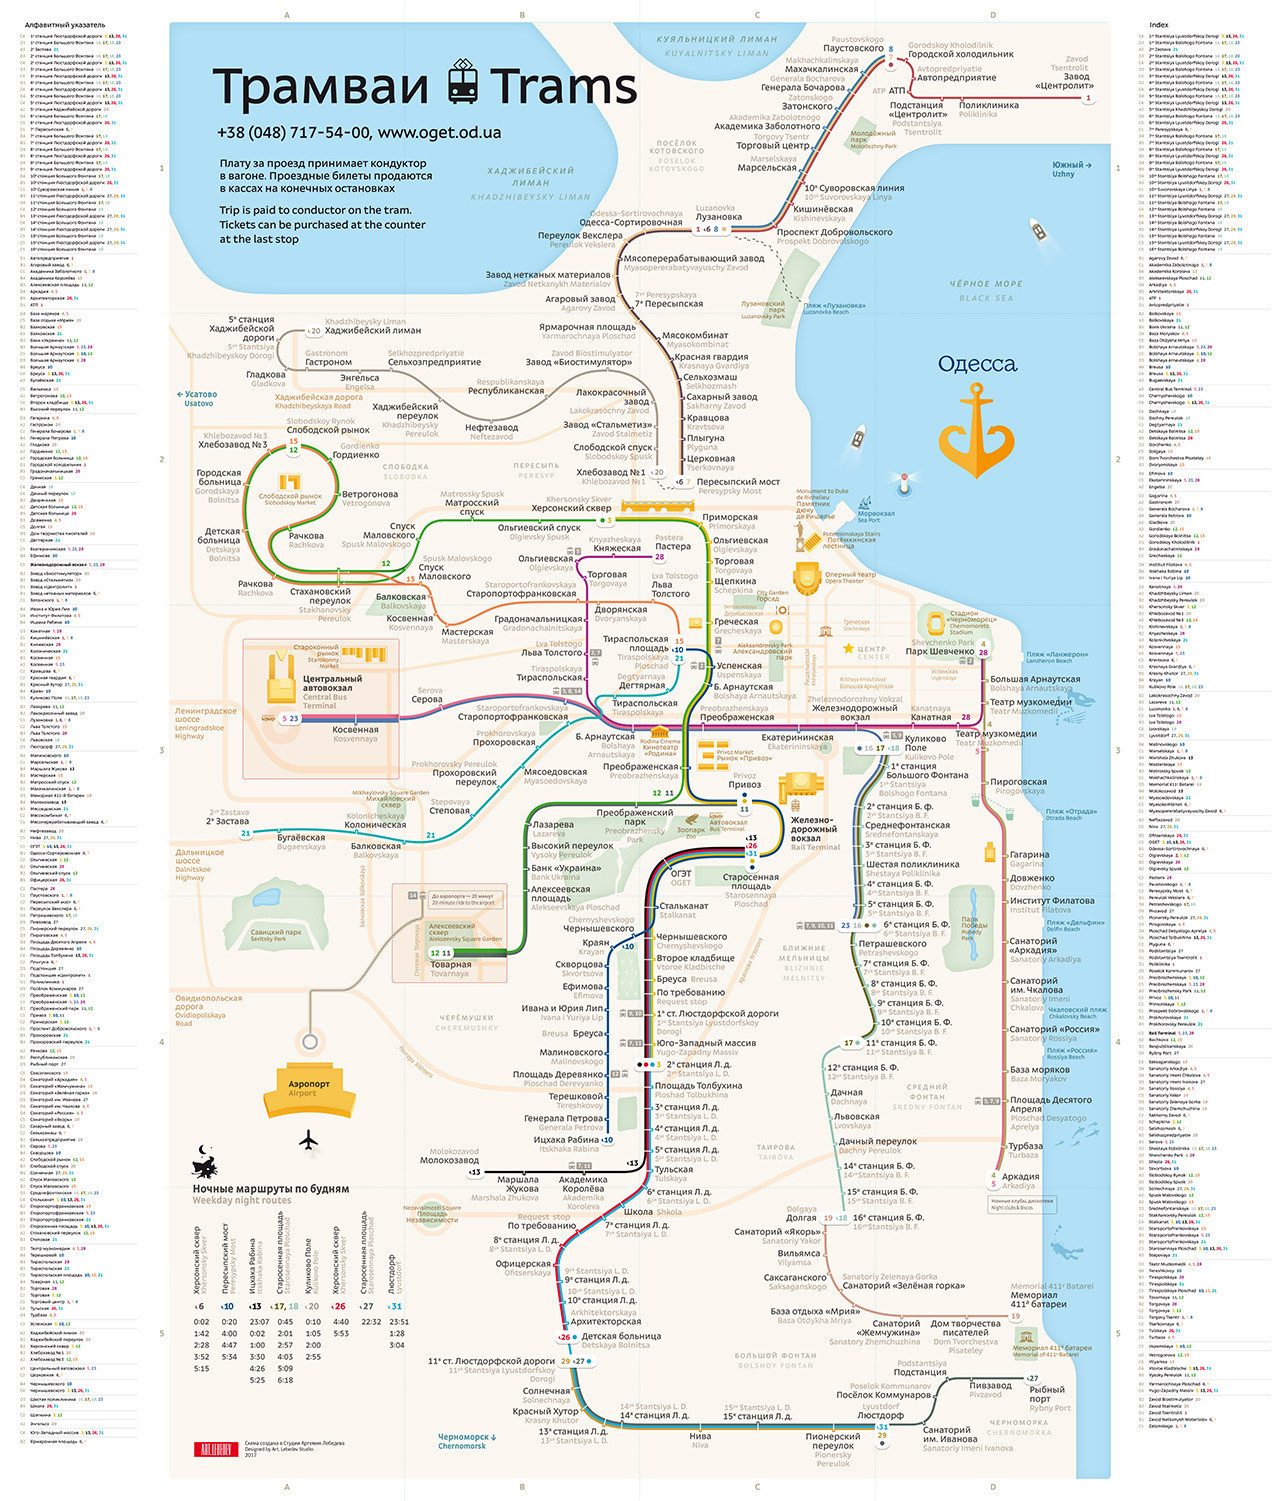 Amtrak California Zephyr Route Map Printable Transit Maps - Amtrak California Zephyr Route Map